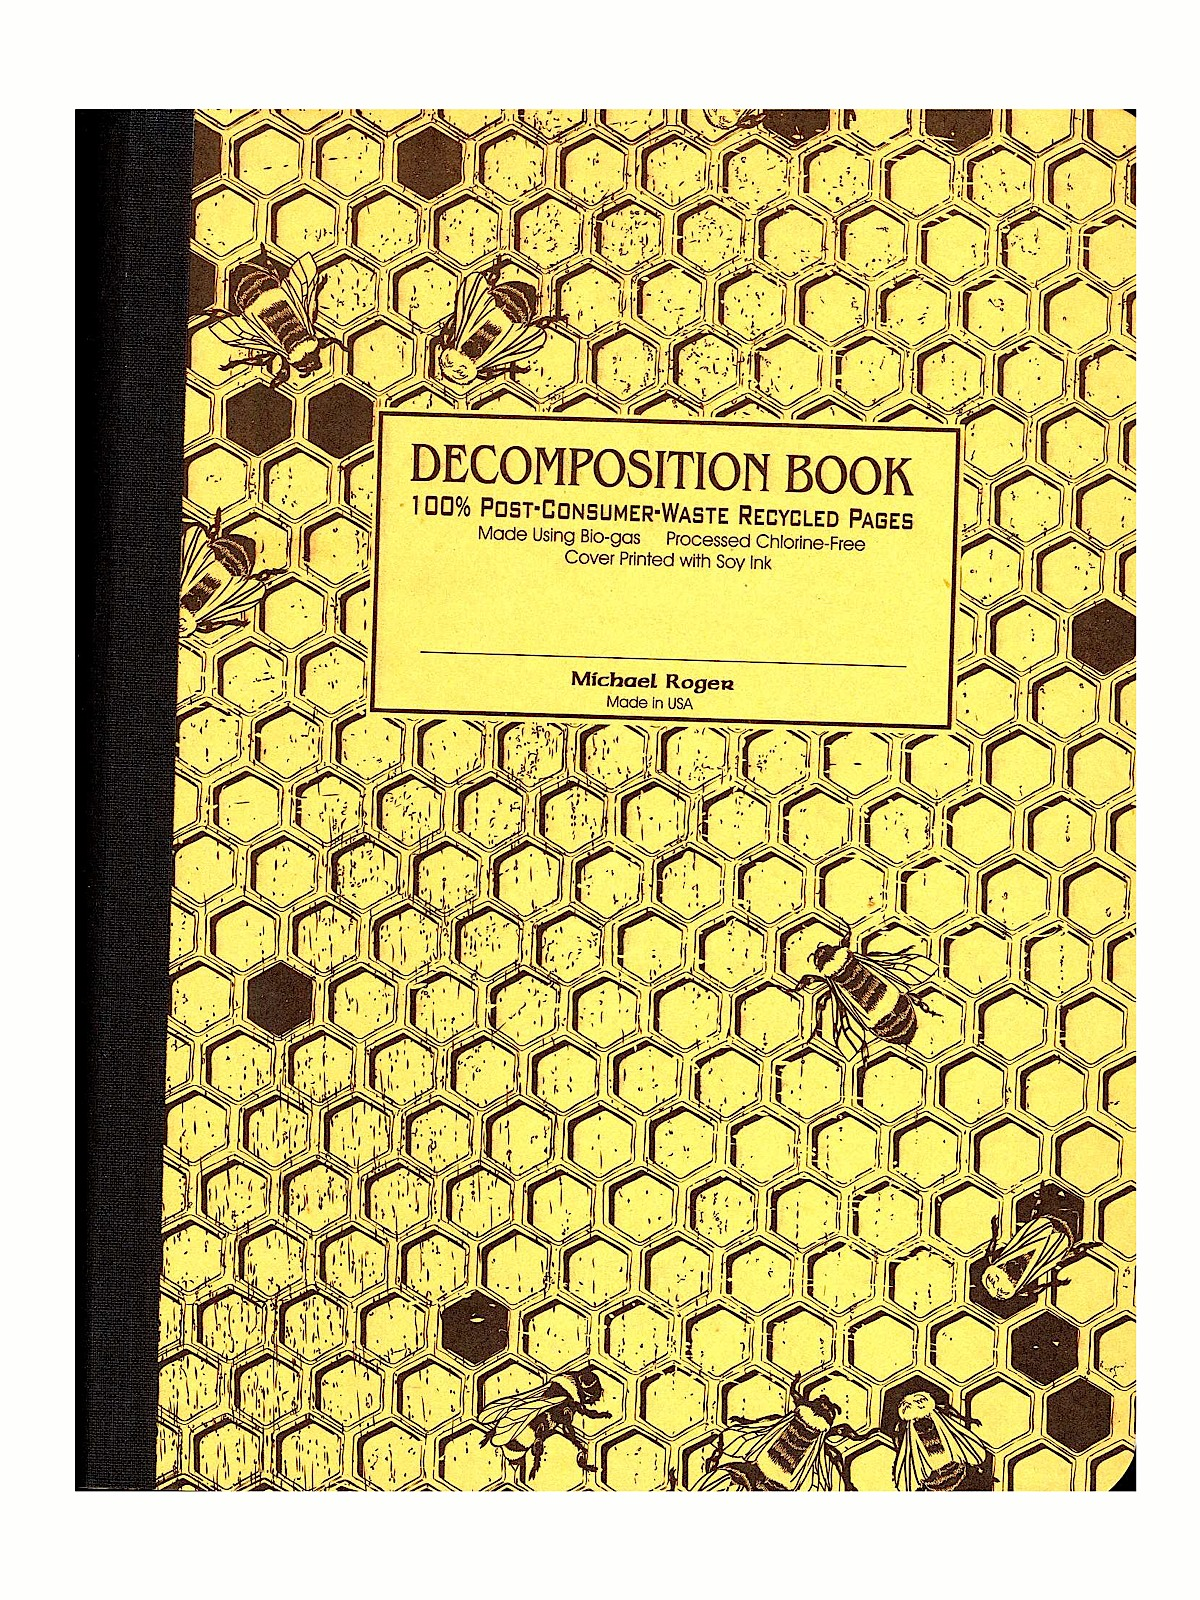 Decomposition Book honeycomb - f885bc883ae2839 , Decomposition-Book-honeycomb-13708576 , Decomposition Book honeycomb , Array , 13708576 , Gift Ideas , 46941